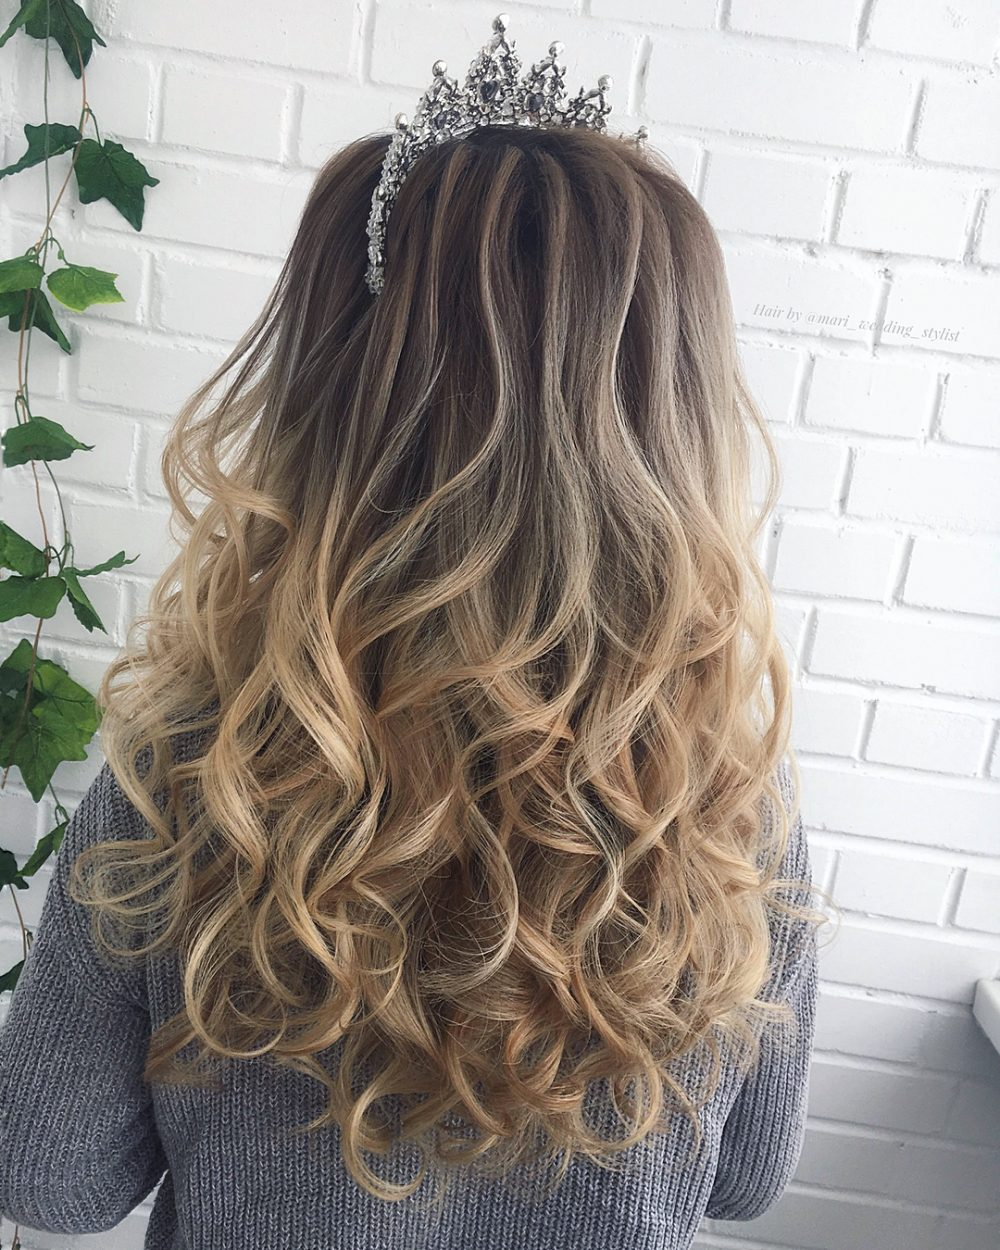 17 Perfectly Gorgeous Down Hairstyles for Prom